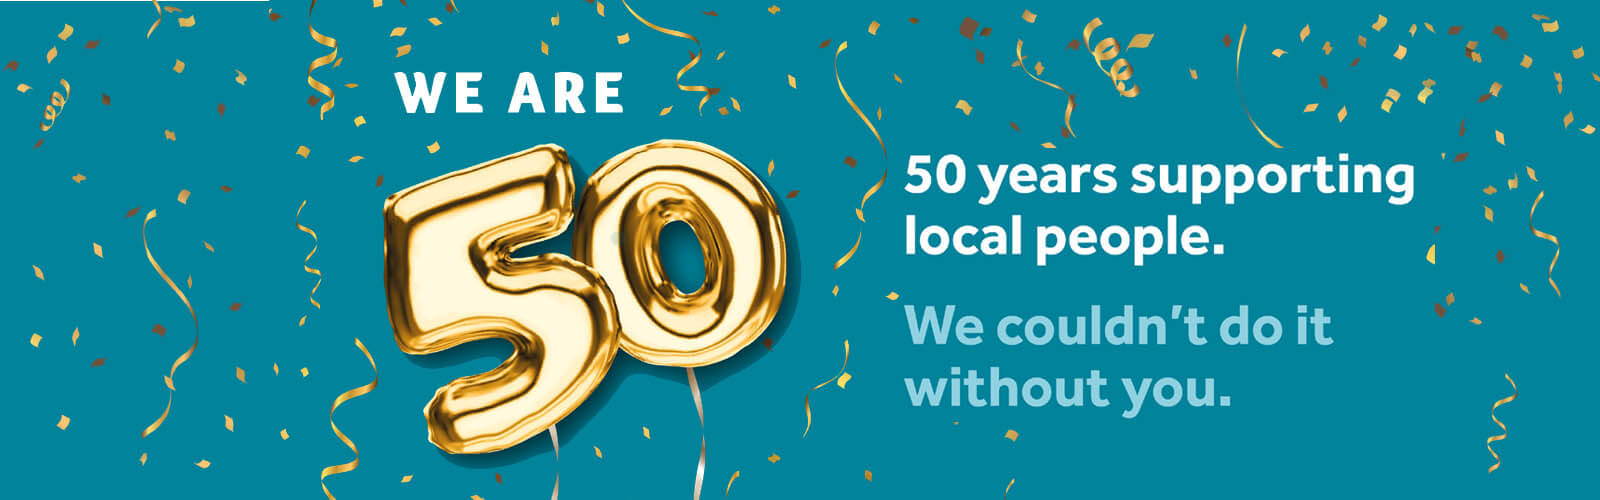 We are 50